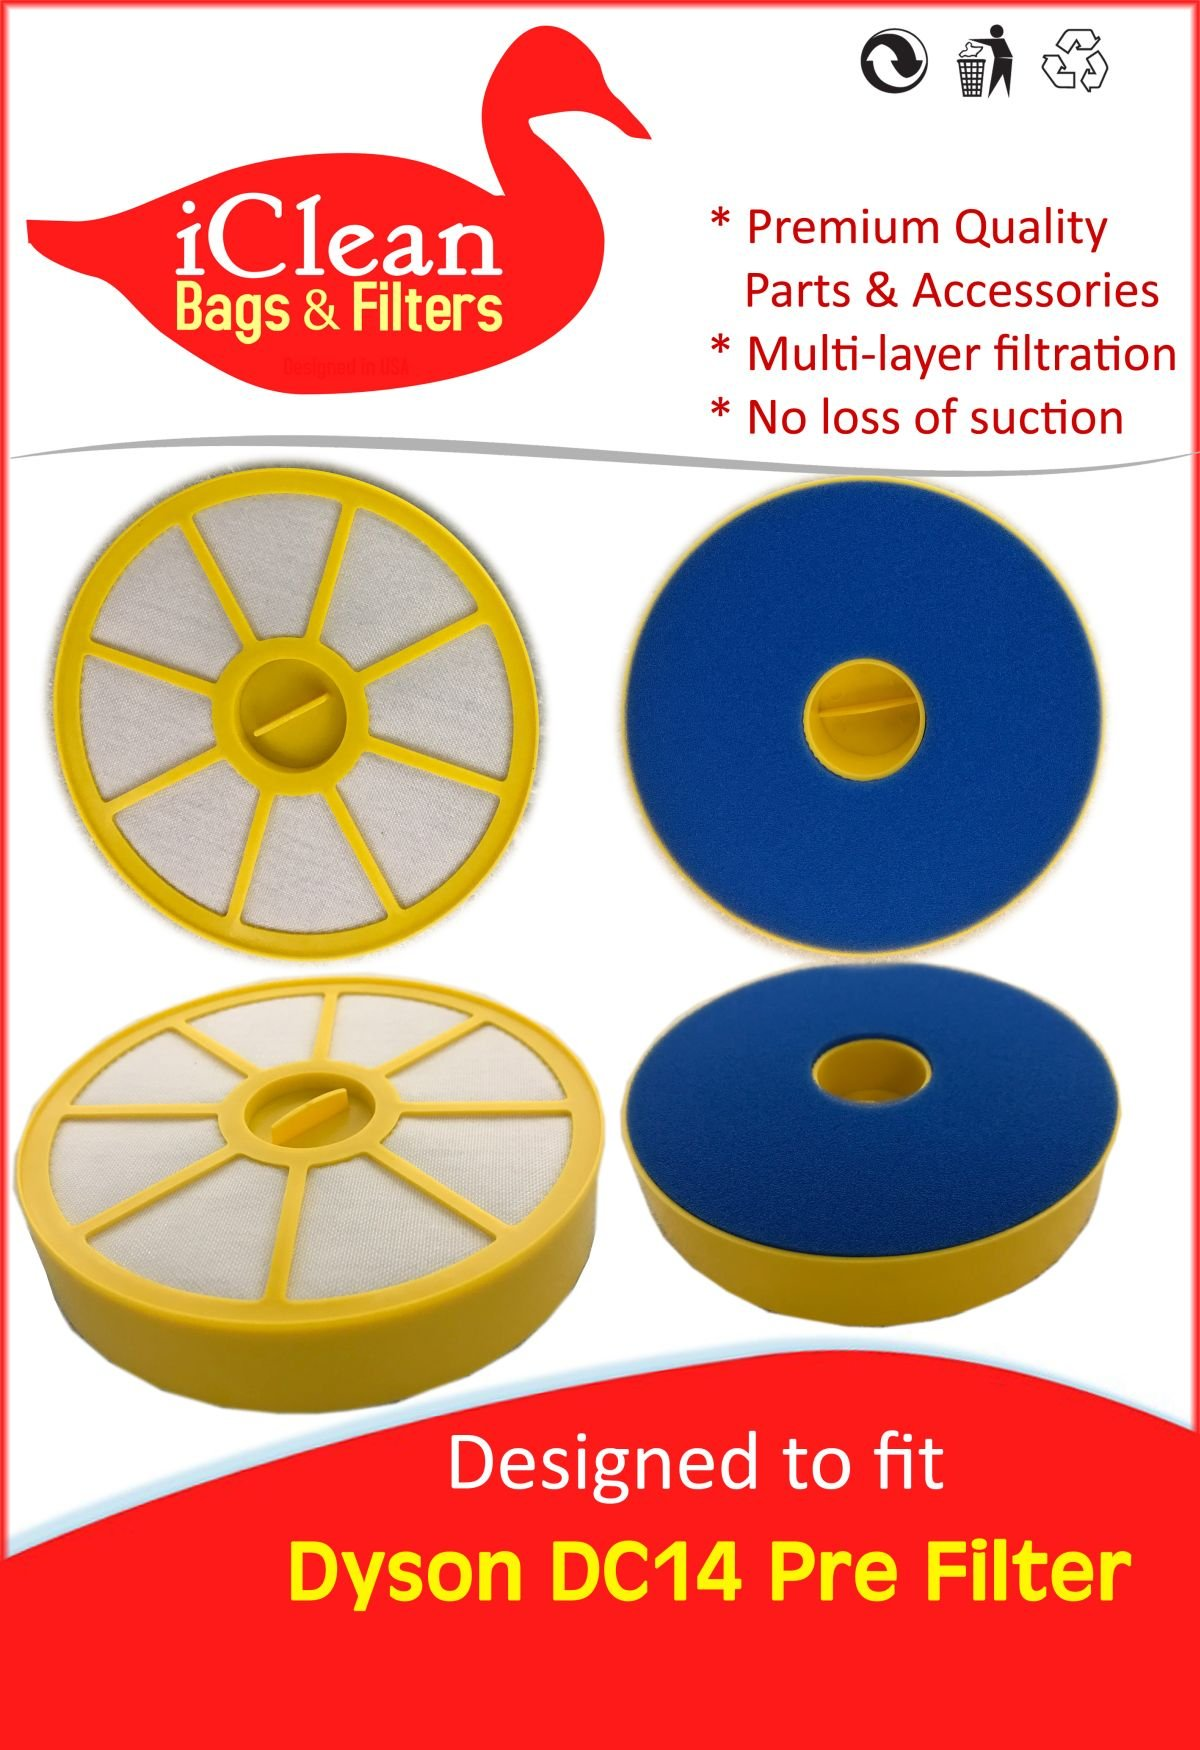 iClean Vacuums Dyson DC14 Pre Filter - 6 Pack of Replacement Filters Designed to fit 905401-01 $$ Better Quality Better Value